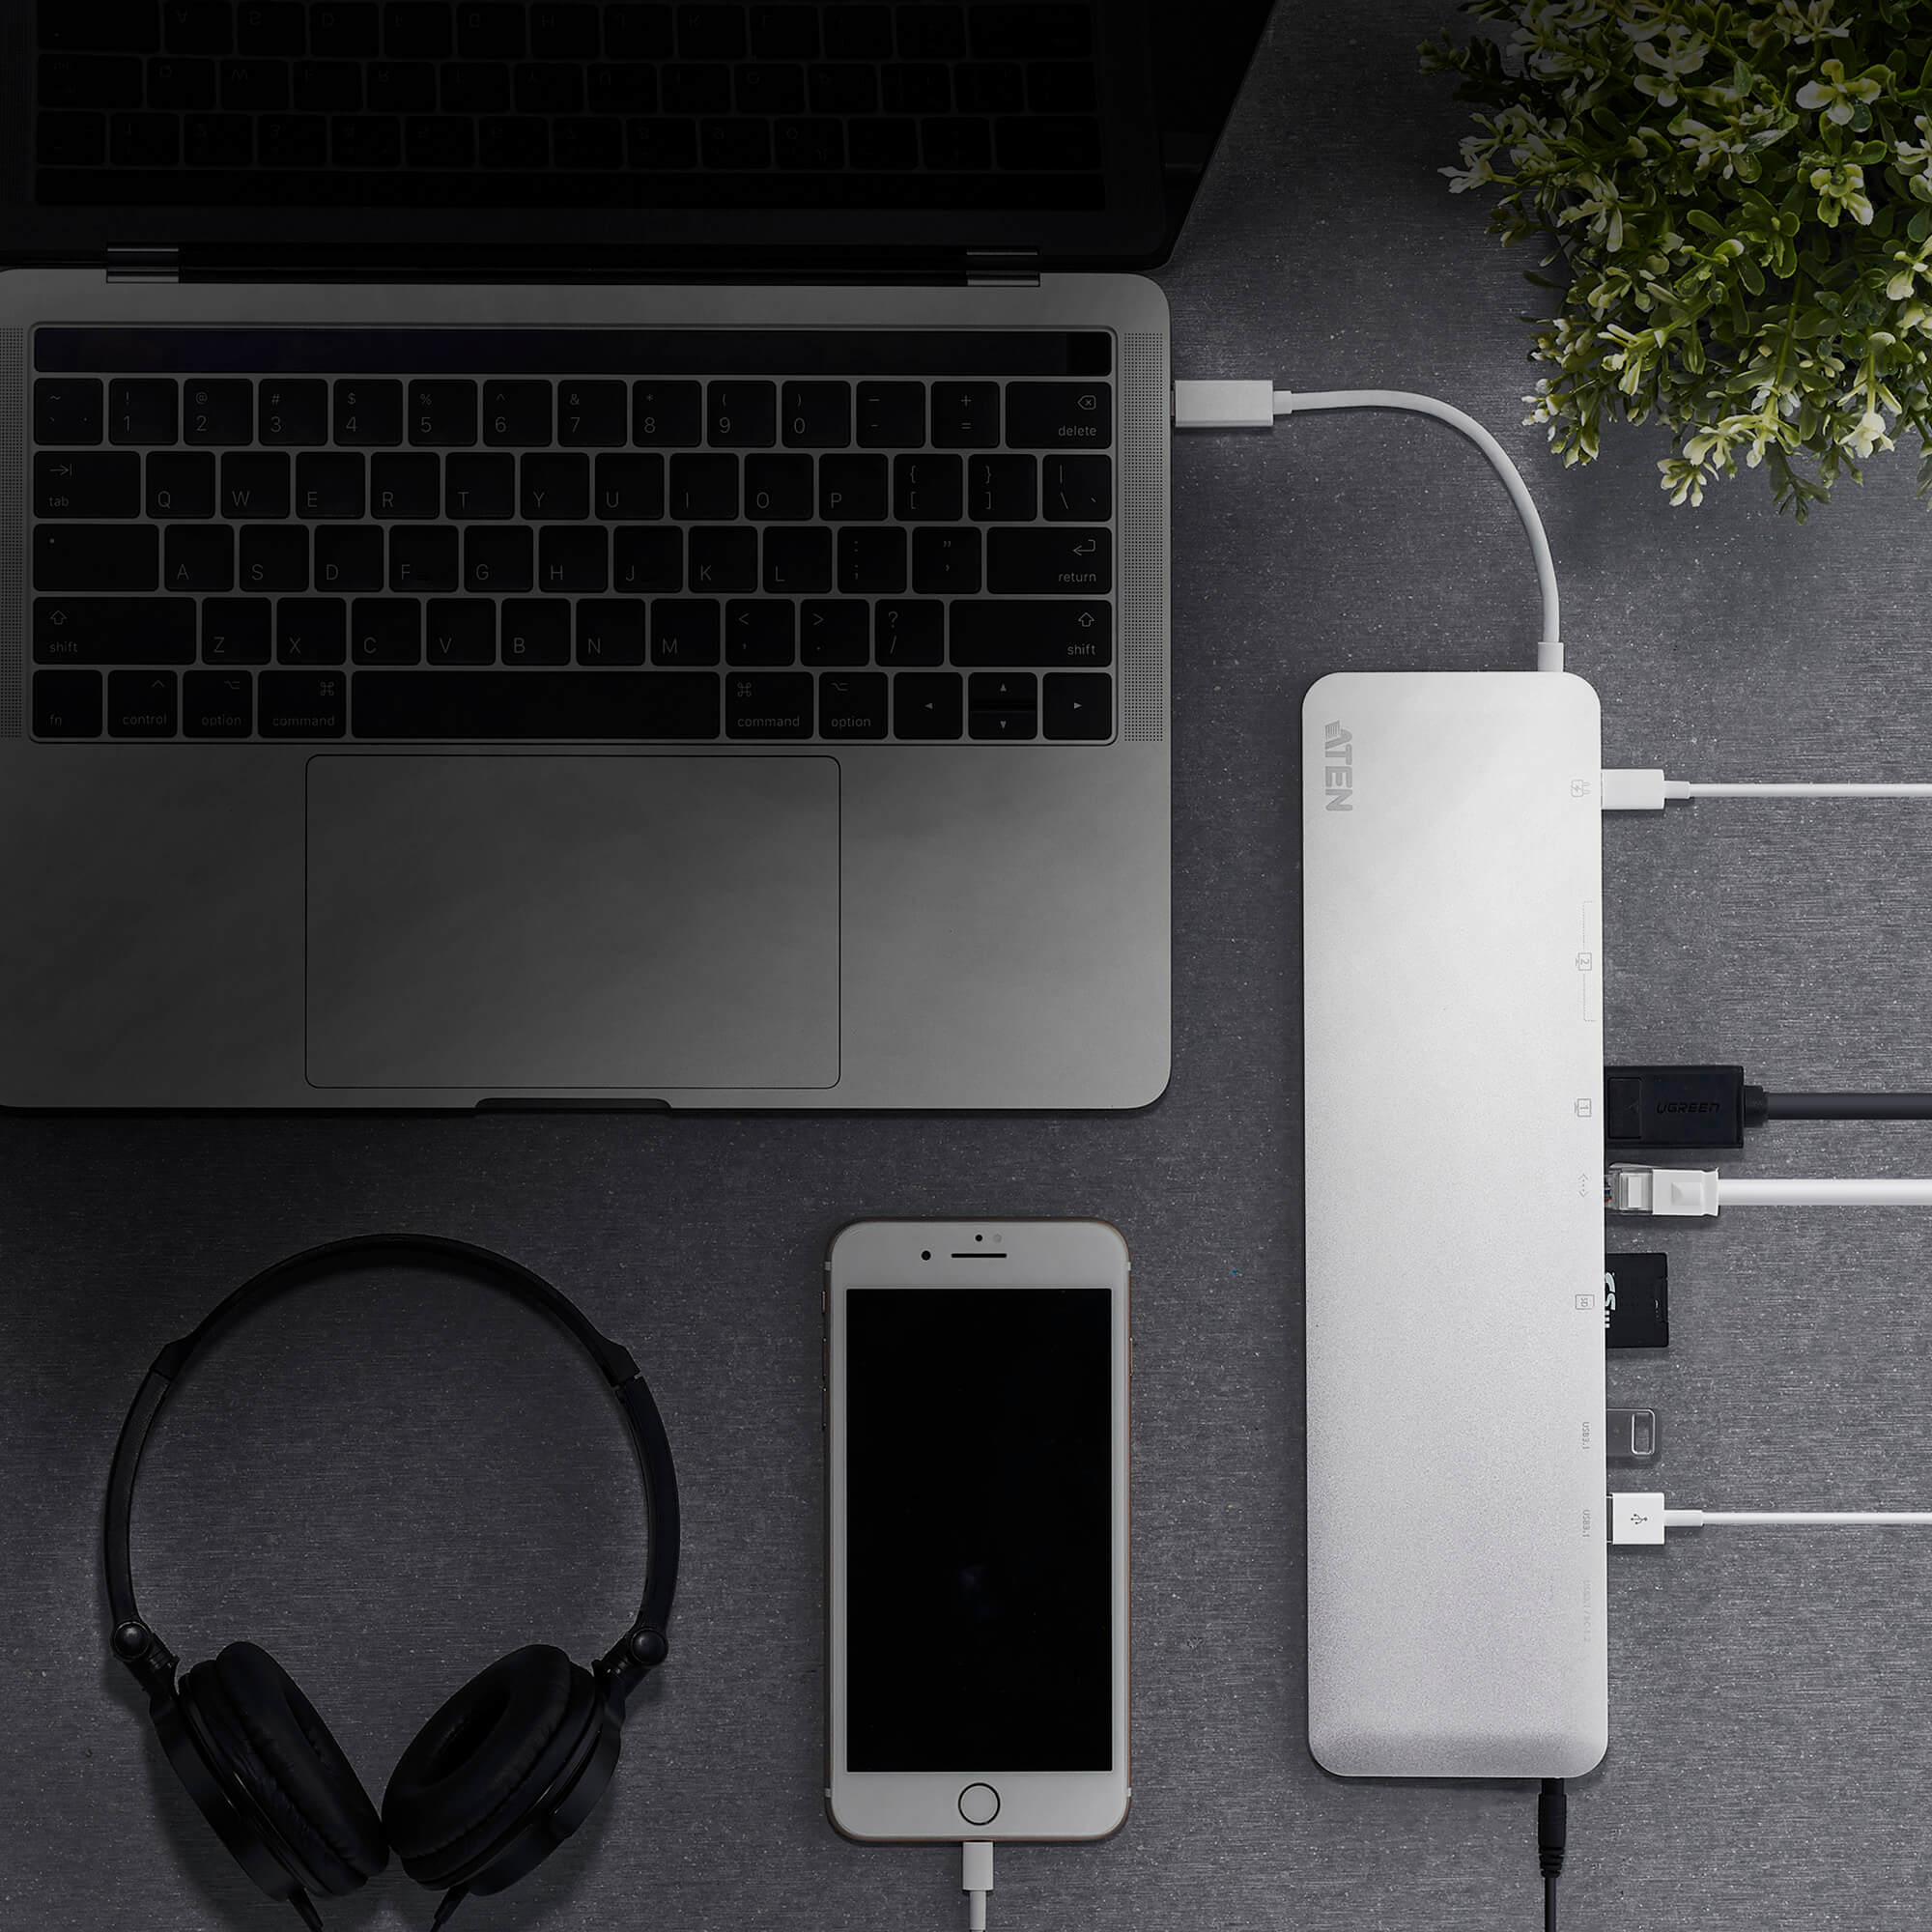 Dock multiporta USB-C con pass-through dell'alimentazione-4